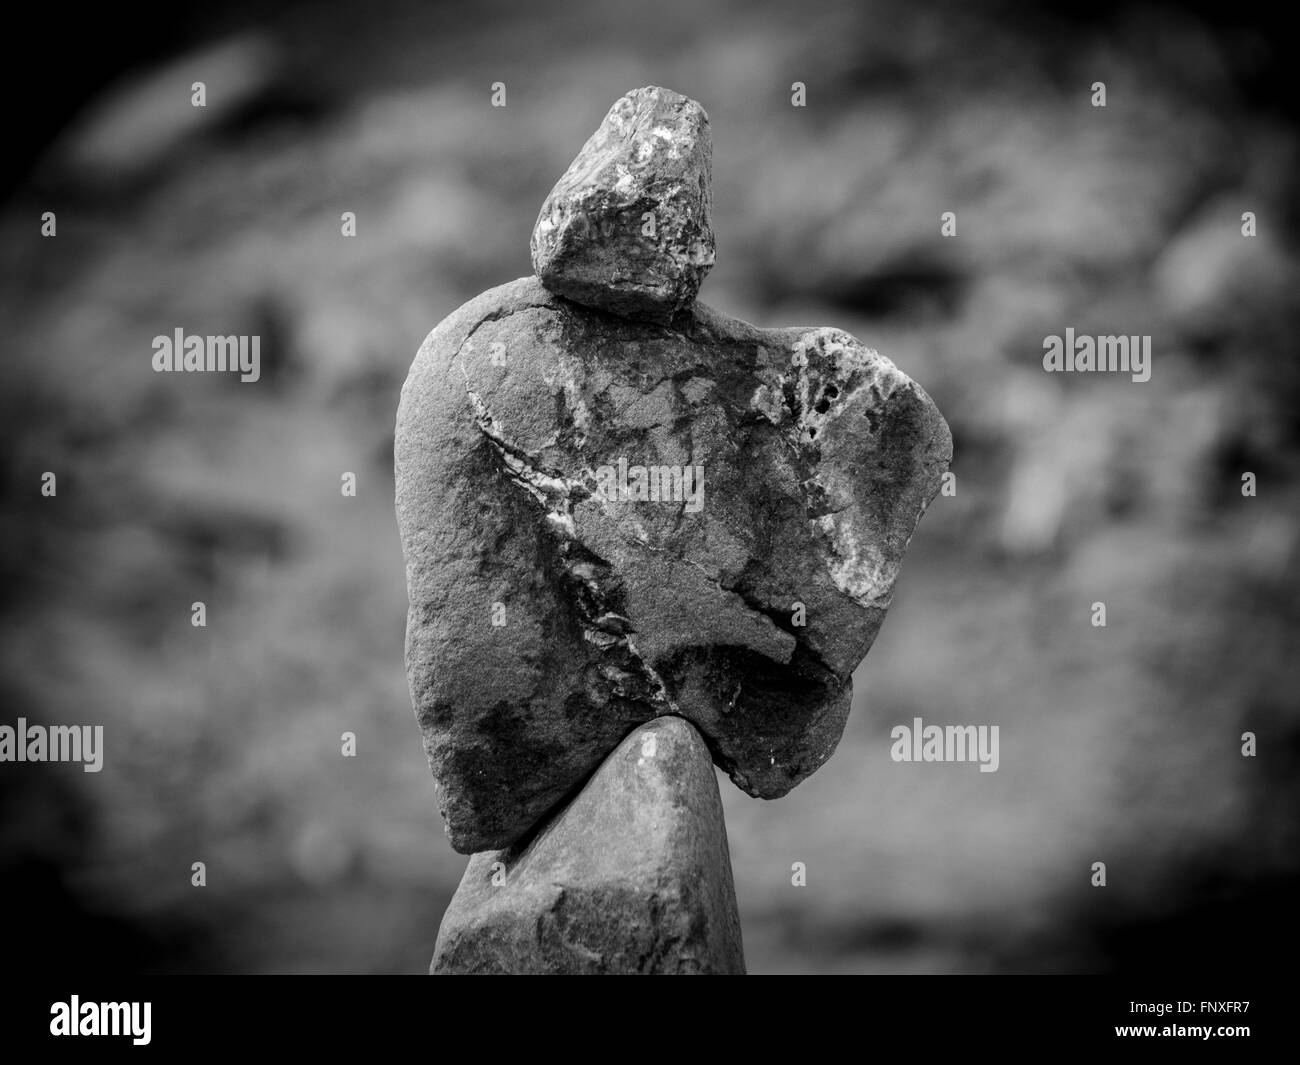 rock sculpture that looks like the grim reaper - Stock Image